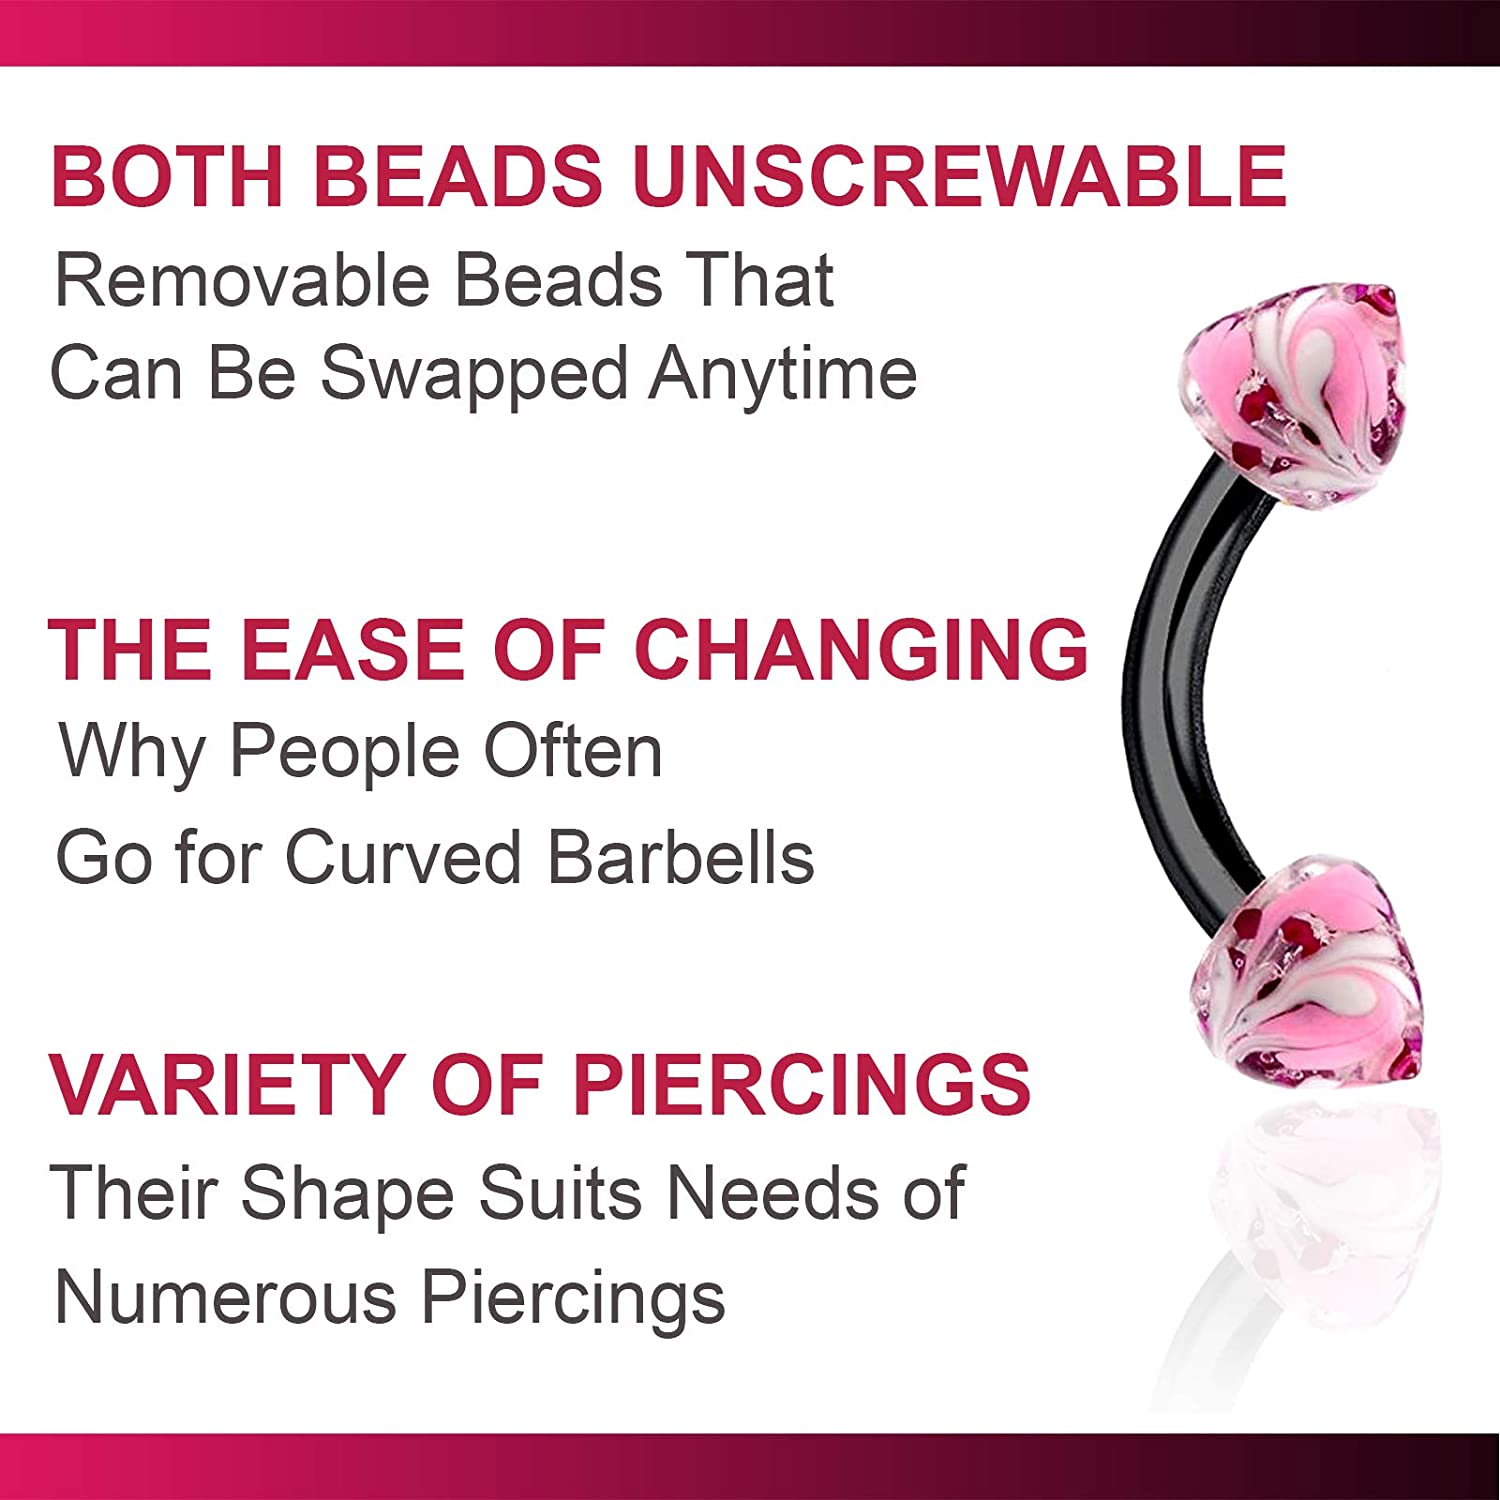 bodyjewellery 2Pcs 16g Curved Barbell Septum Cartilage Lobe Eyebrow Tragus Rook Helix Black Anodized Steel Hand Painted 03 Spike - Pick Size